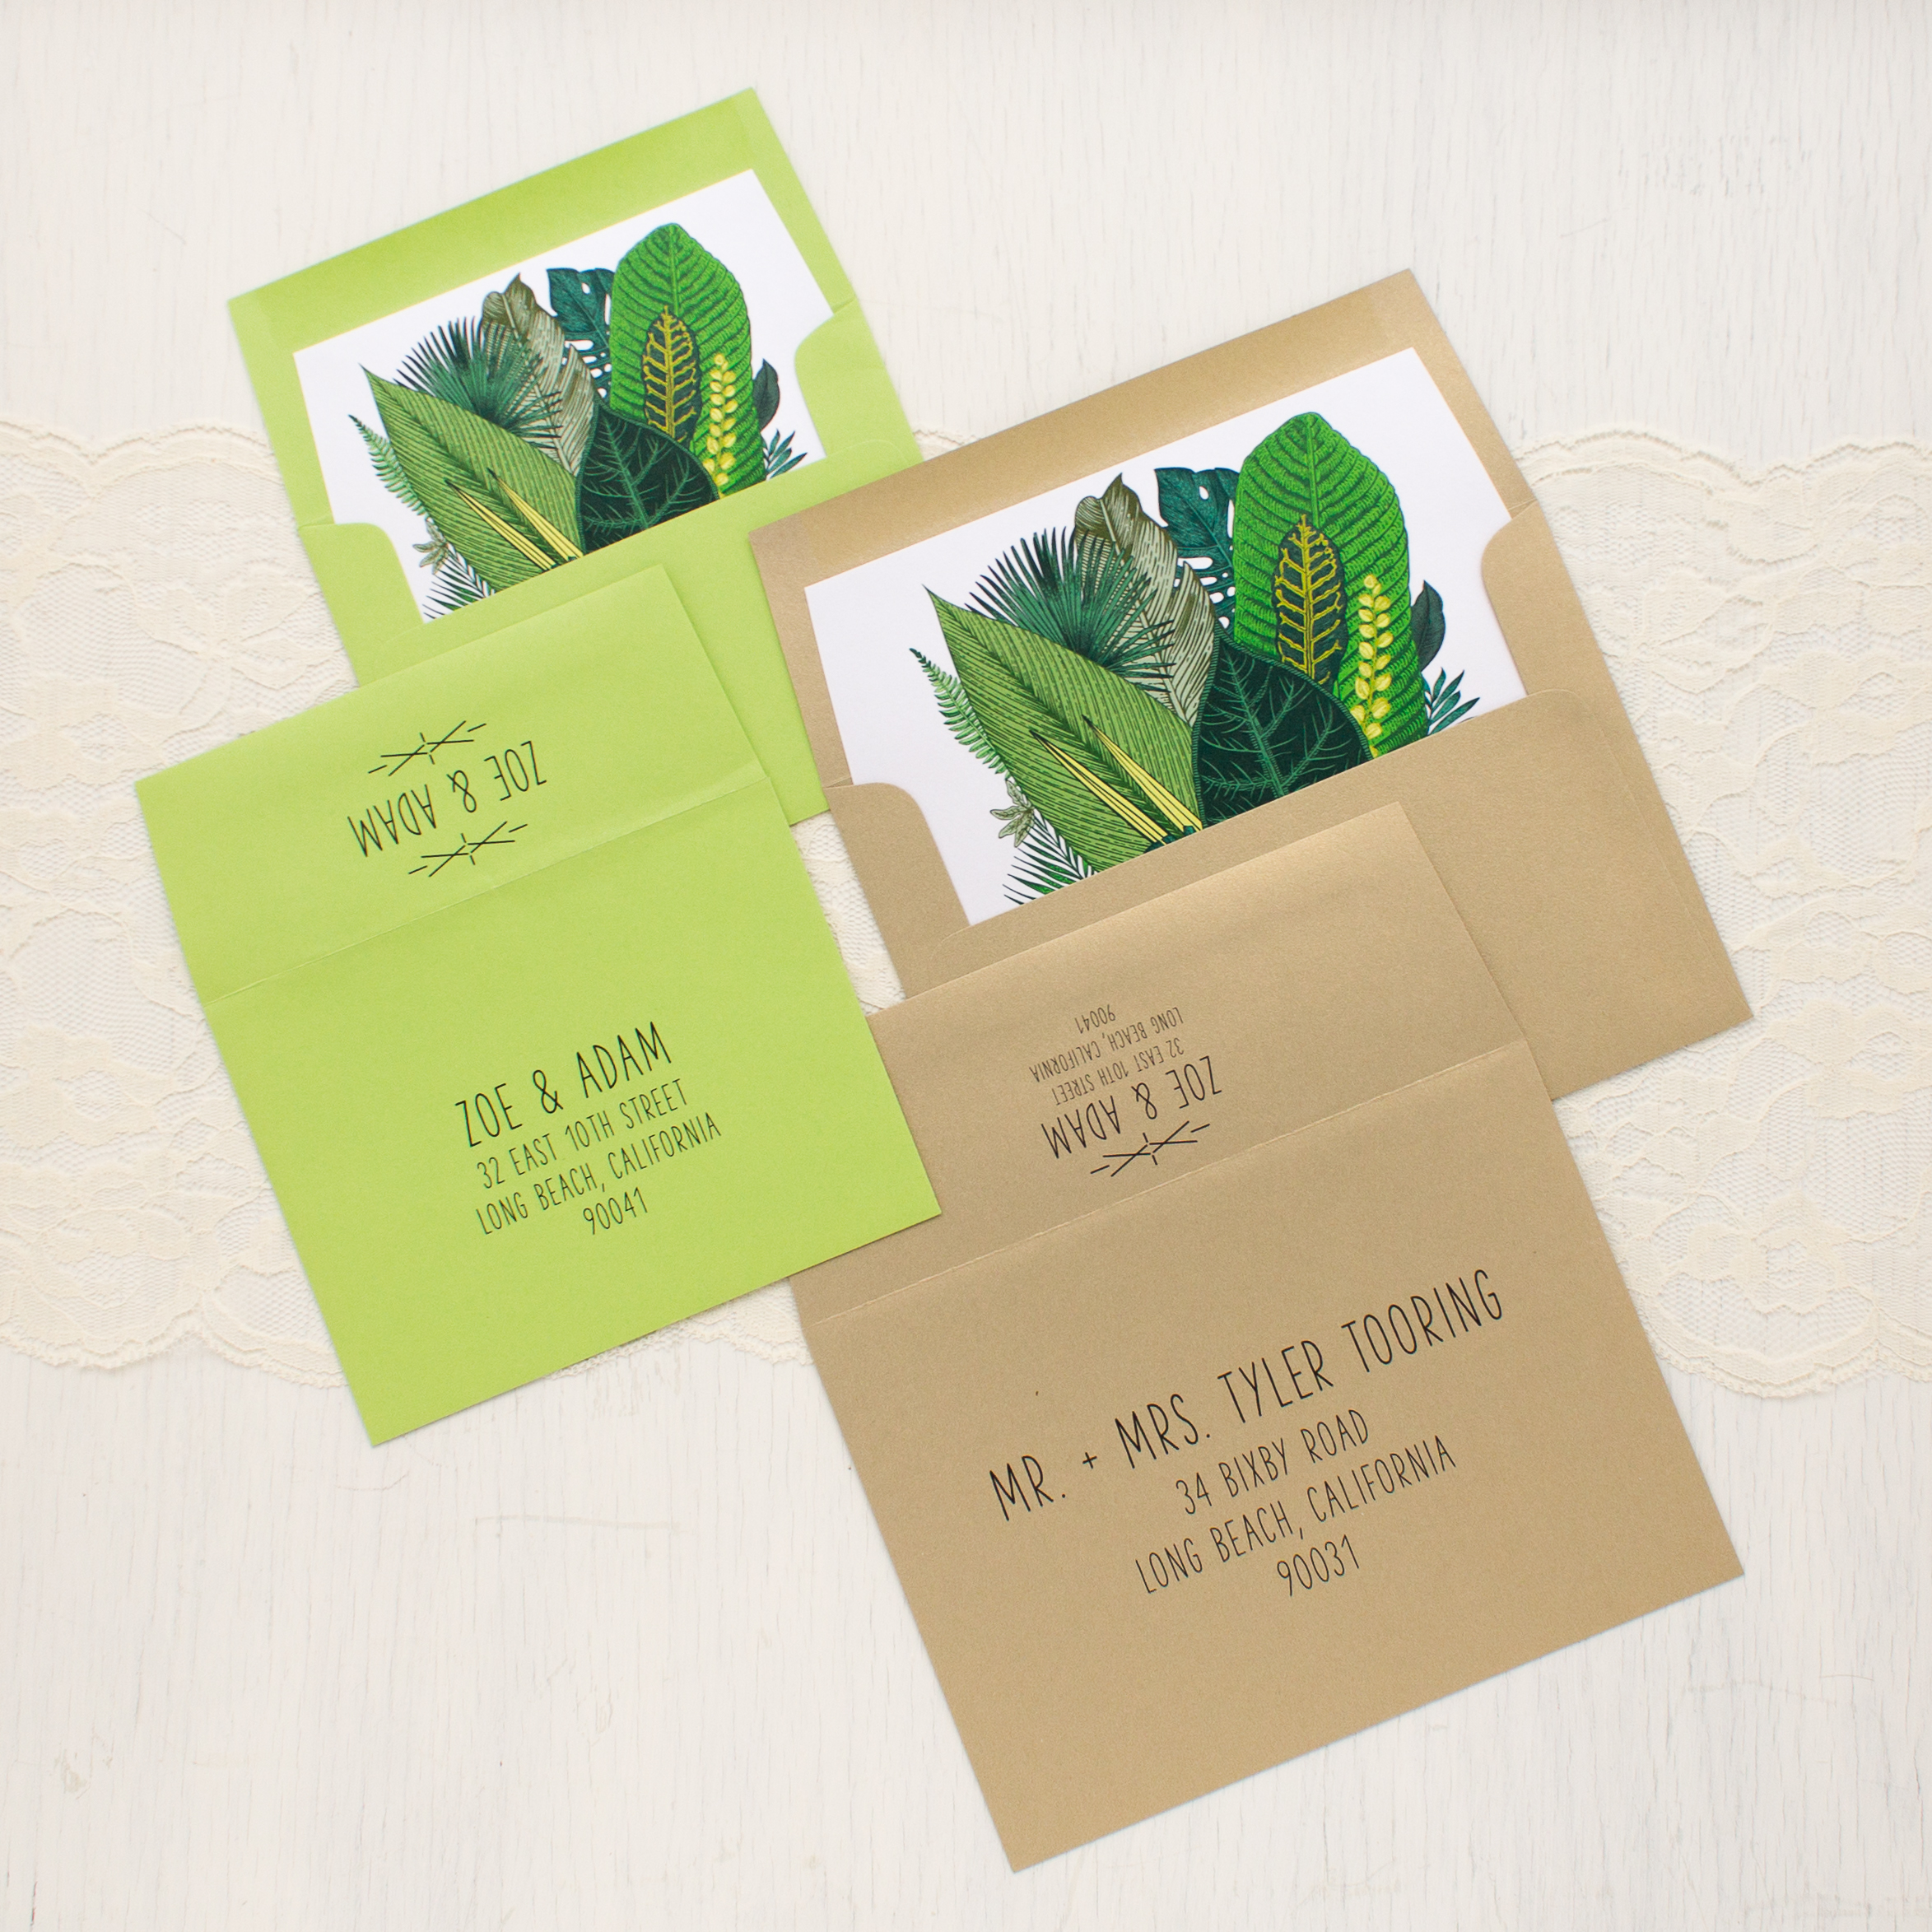 Green Leaf Wedding Invitations | Beacon Lane